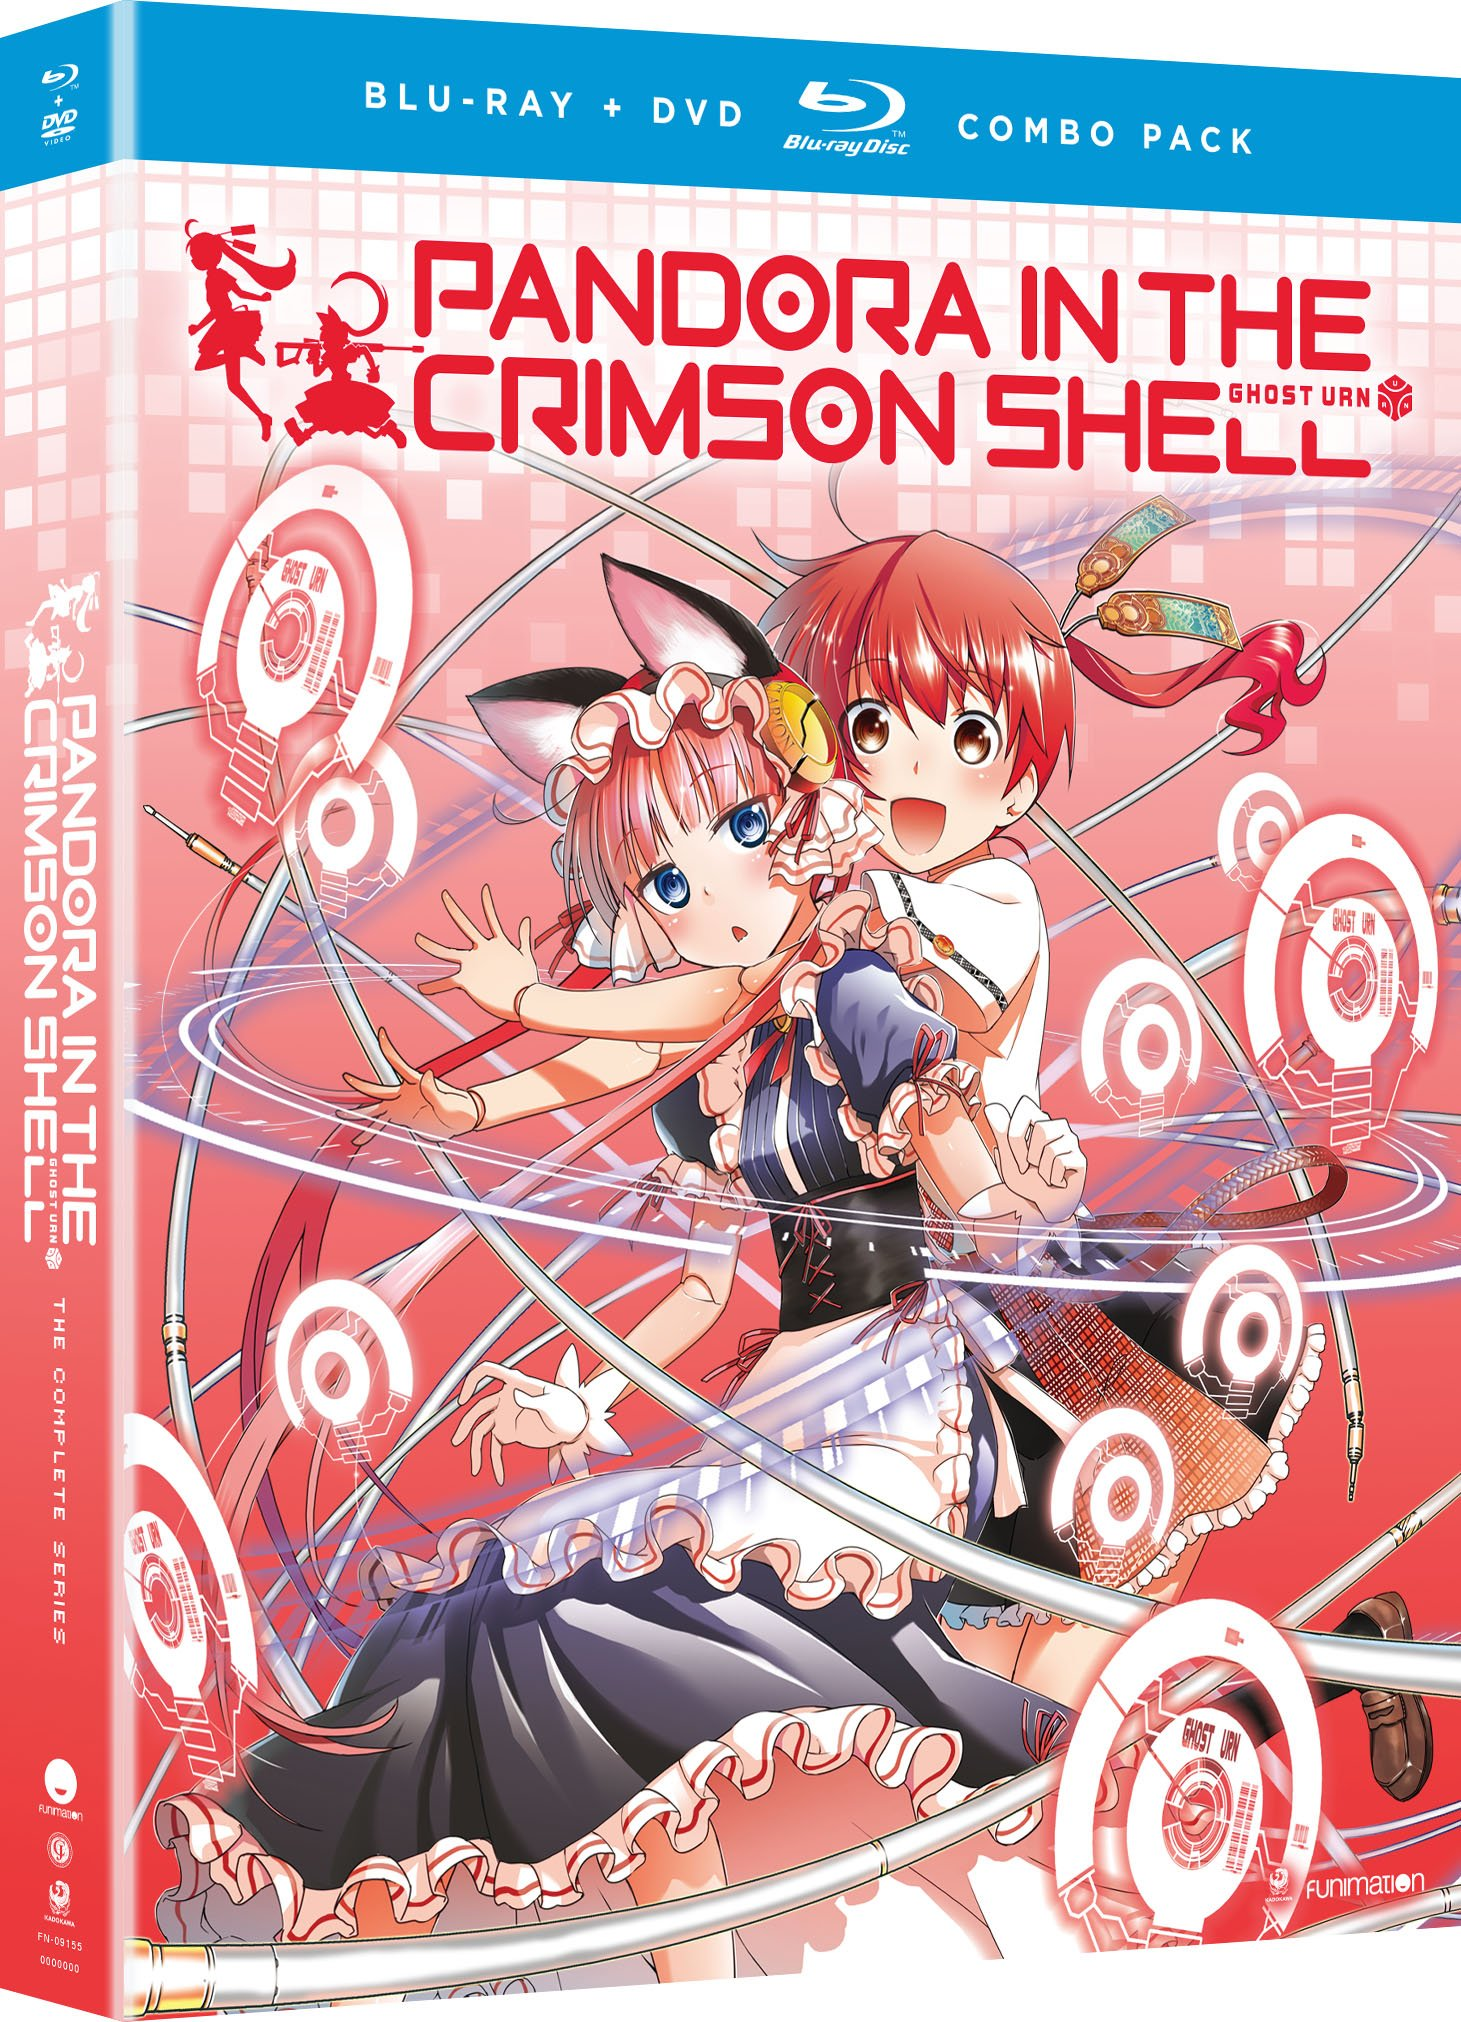 Blu-ray : Pandora in the Crimson Shell Ghost Urn: The Complete Series (With DVD, Boxed Set, 4 Disc)